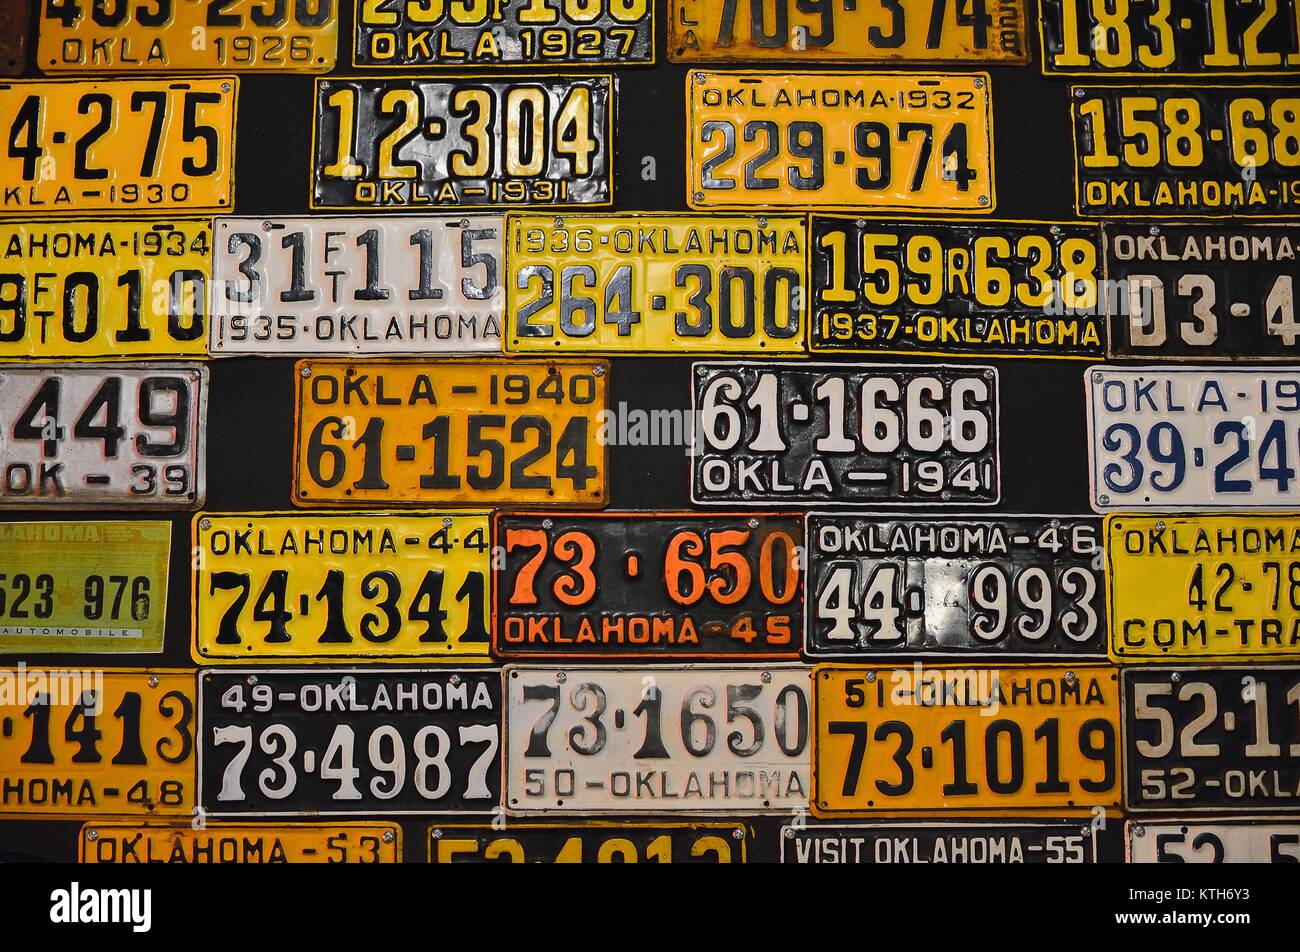 American License Plates Stock Photos & American License Plates ...